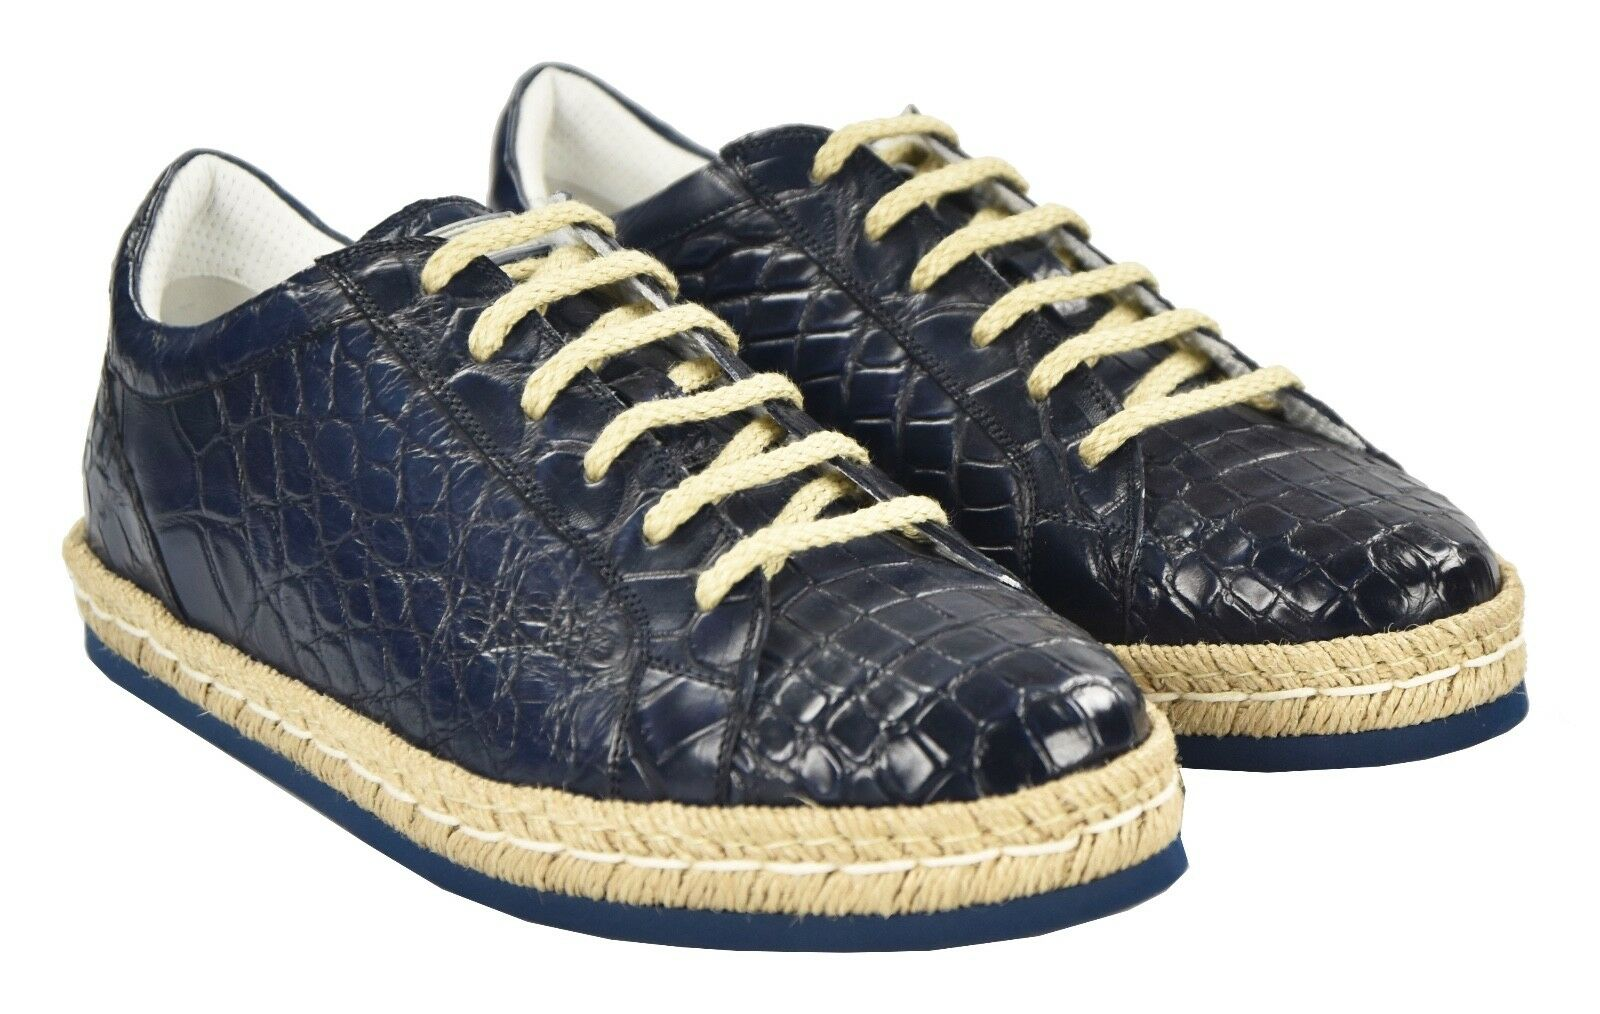 NEW KITON NAPOLI SNEAKERS SHOES 100% LEATHER CROCODILE SIZE 9 US 42 KSC18